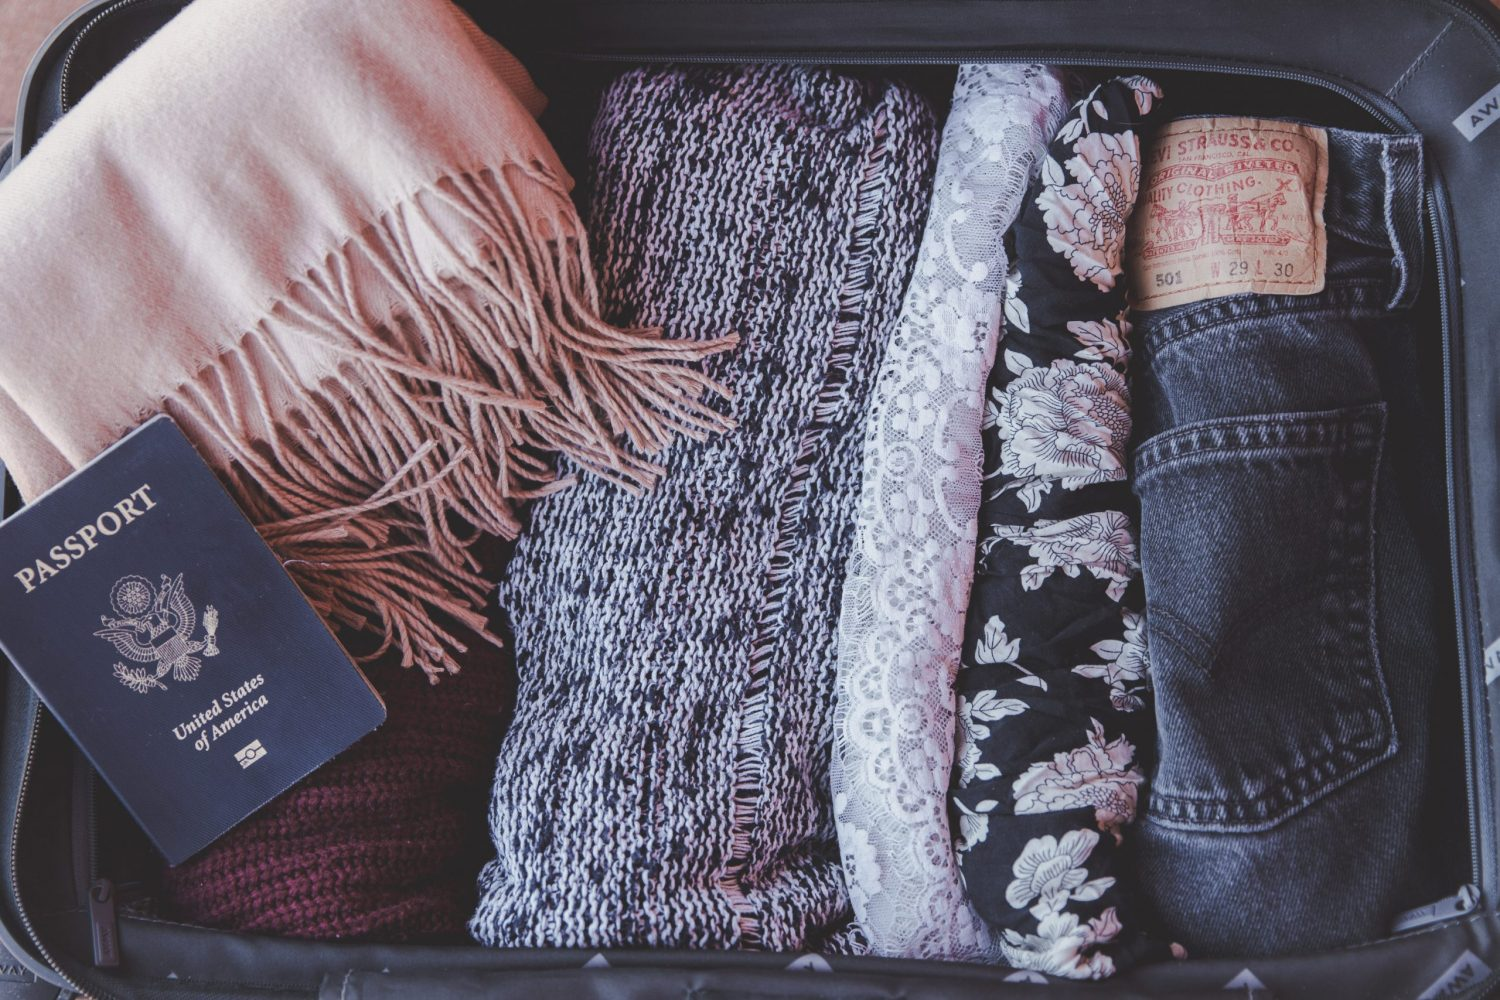 Clothes in a suitcase - consider what to keep before becoming a digital nomad.